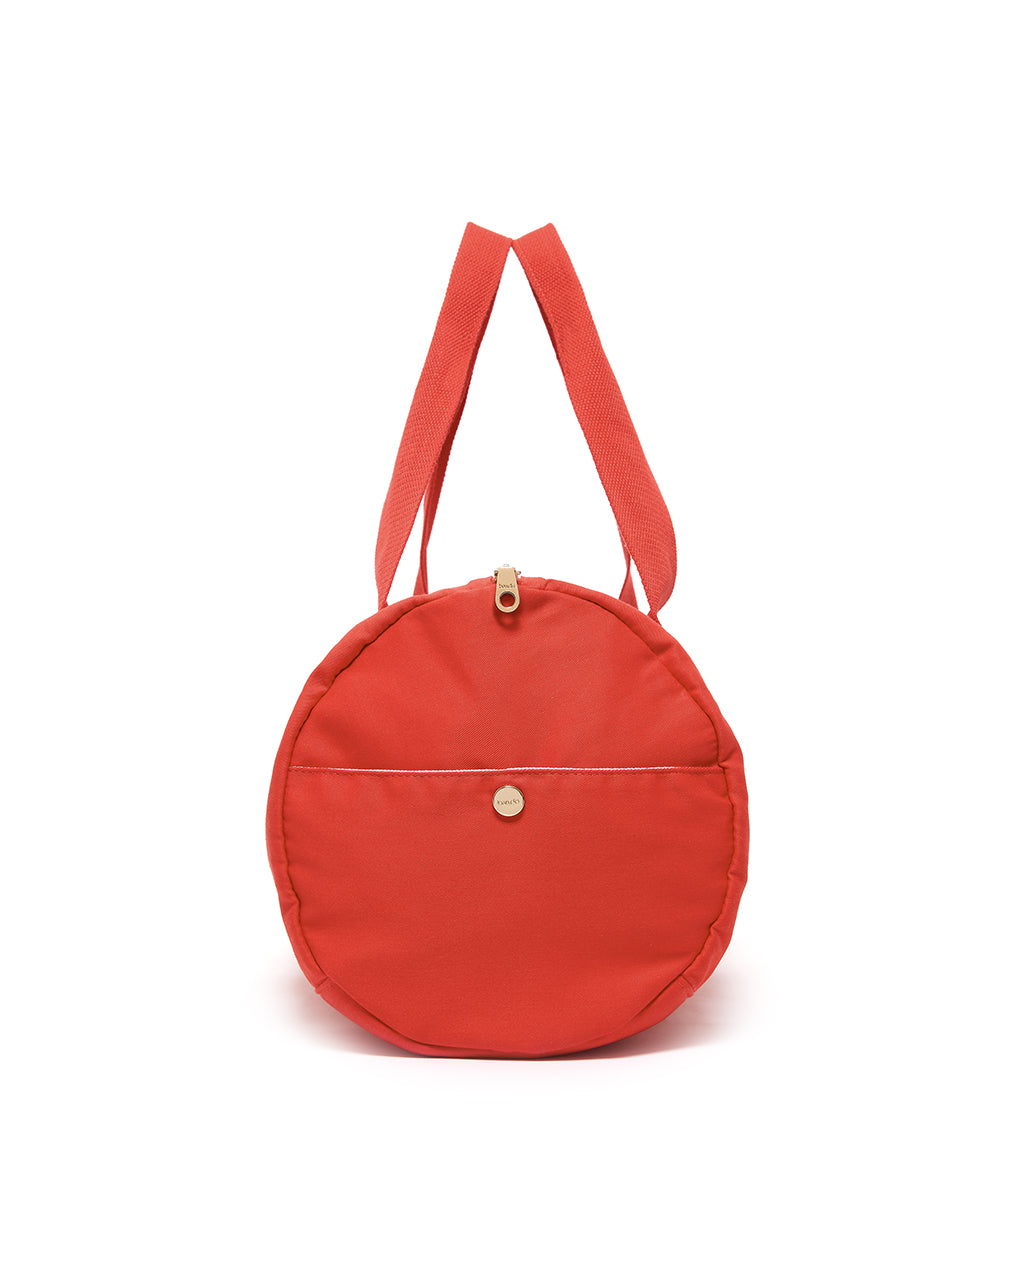 Side view of red duffle bag